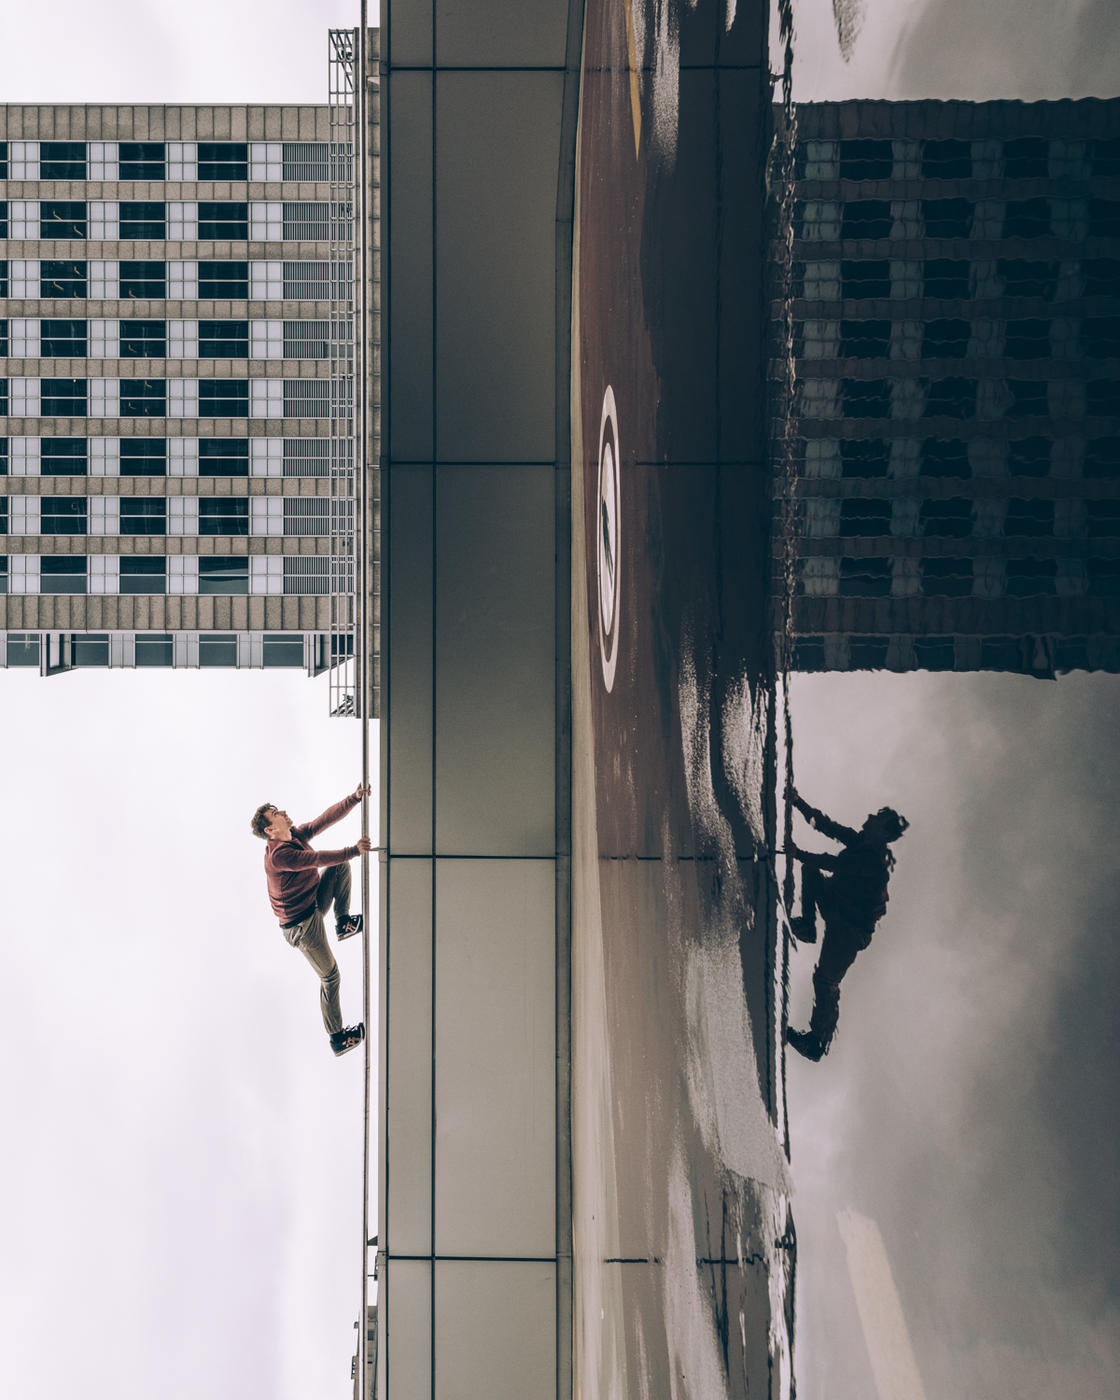 Architecture and Illusions – The amazing photographs by Max Leitner